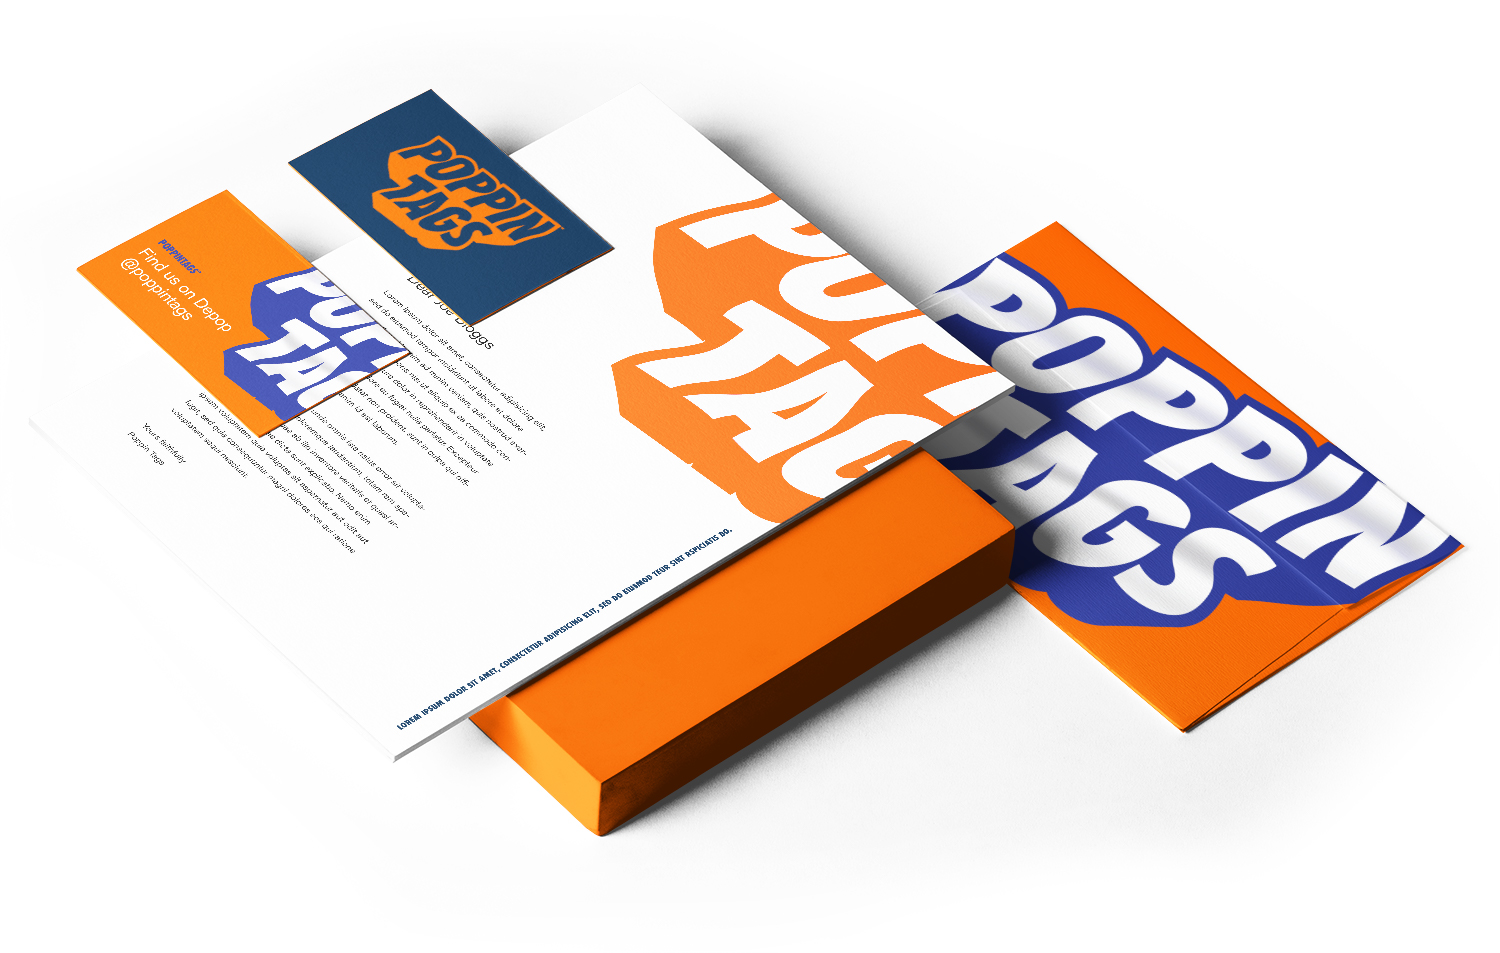 Branding - Kick-start your brand in style and stand out from the crowd with our complete branding packages.